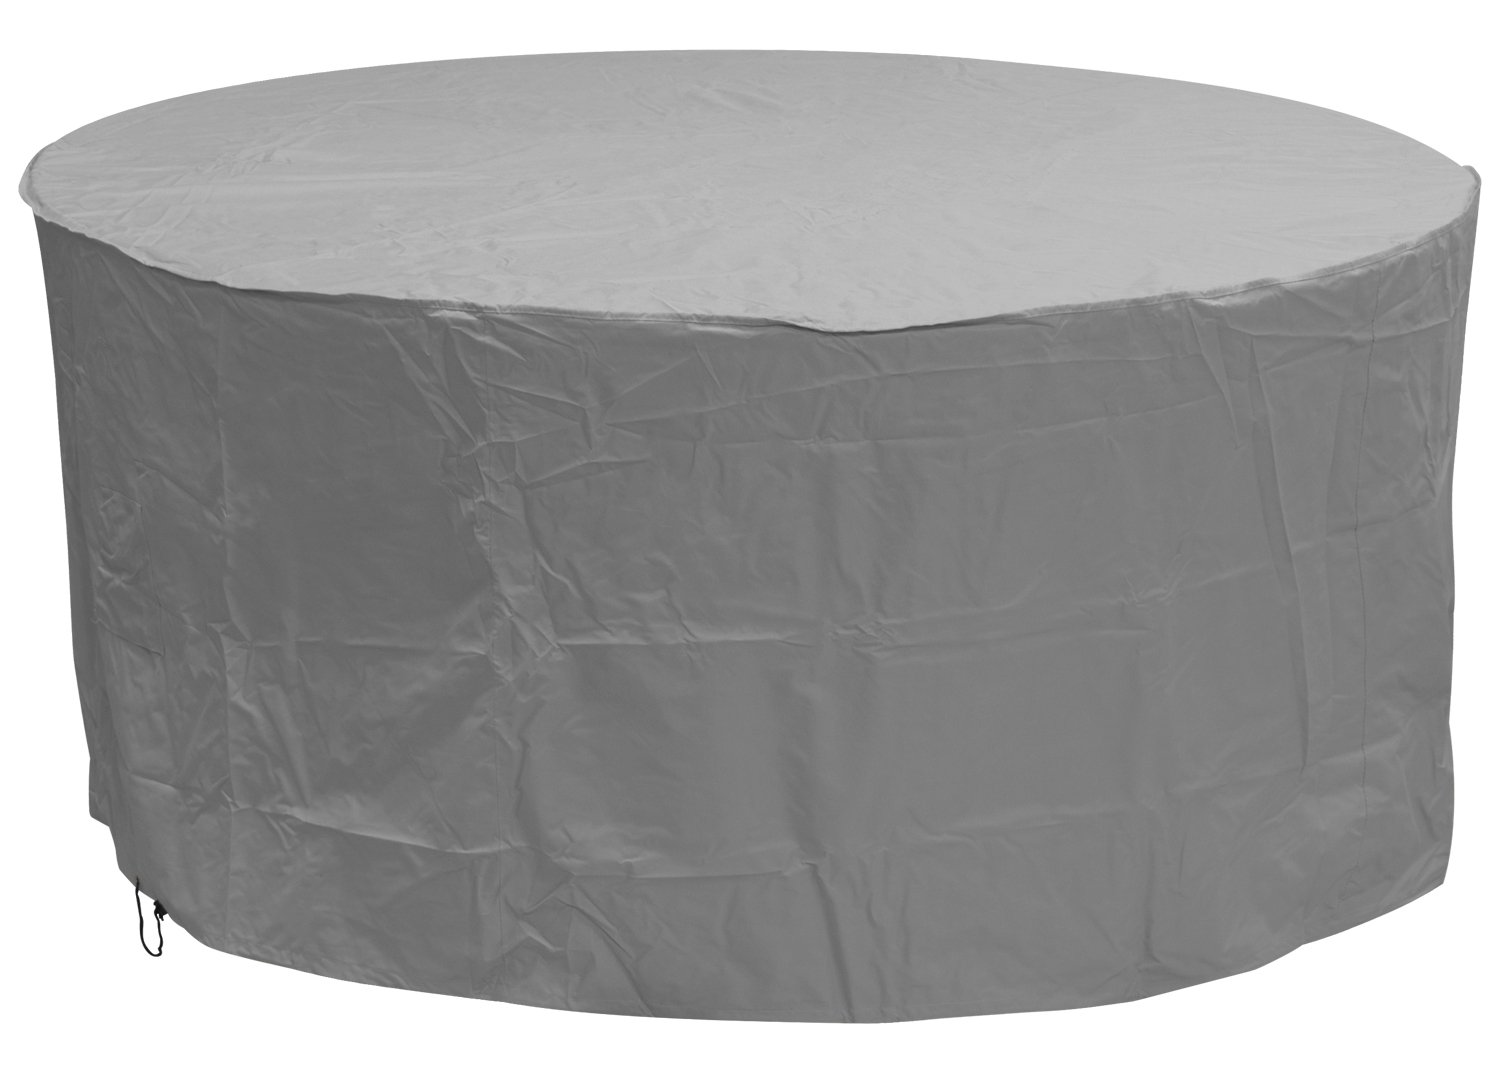 Oxbridge grey large round outdoor garden patio furniture set cover 2 27m x 1m 7 4ft x 3 25ft 5 year guarantee